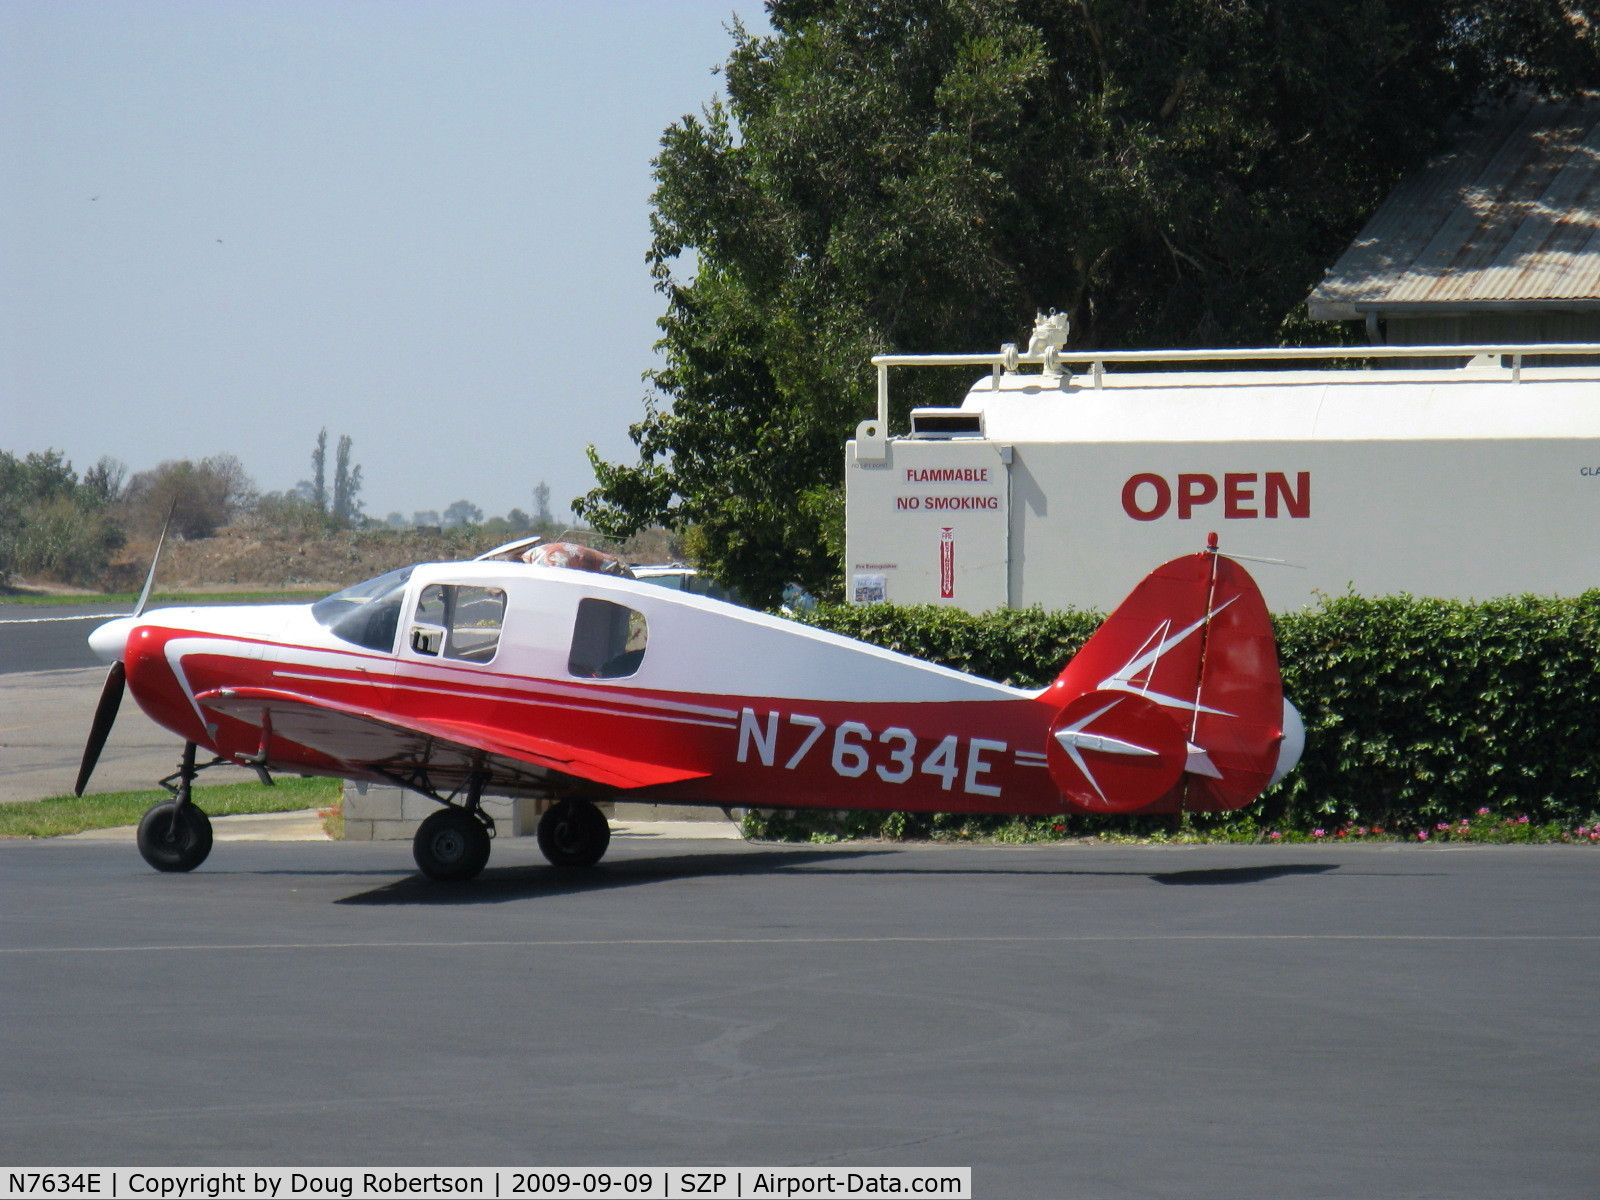 N7634E, 1959 Downer Bellanca 14-19-3 C/N 4136, 1959 Downer Bellanca 260 14-19-3 Cruisemaster, Continental O-470-F 260 Hp, refueling, last of the triple-tail Bellancas model-the 260A went to single tail.